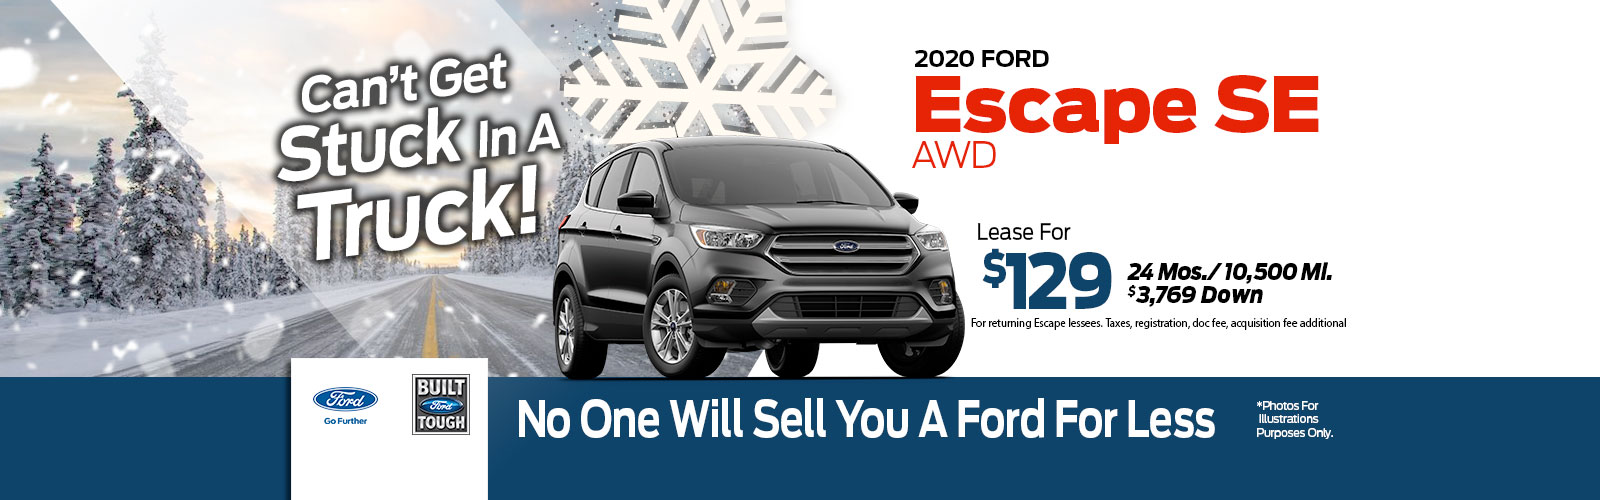 Ford Escape Lease Special at Framingham Ford